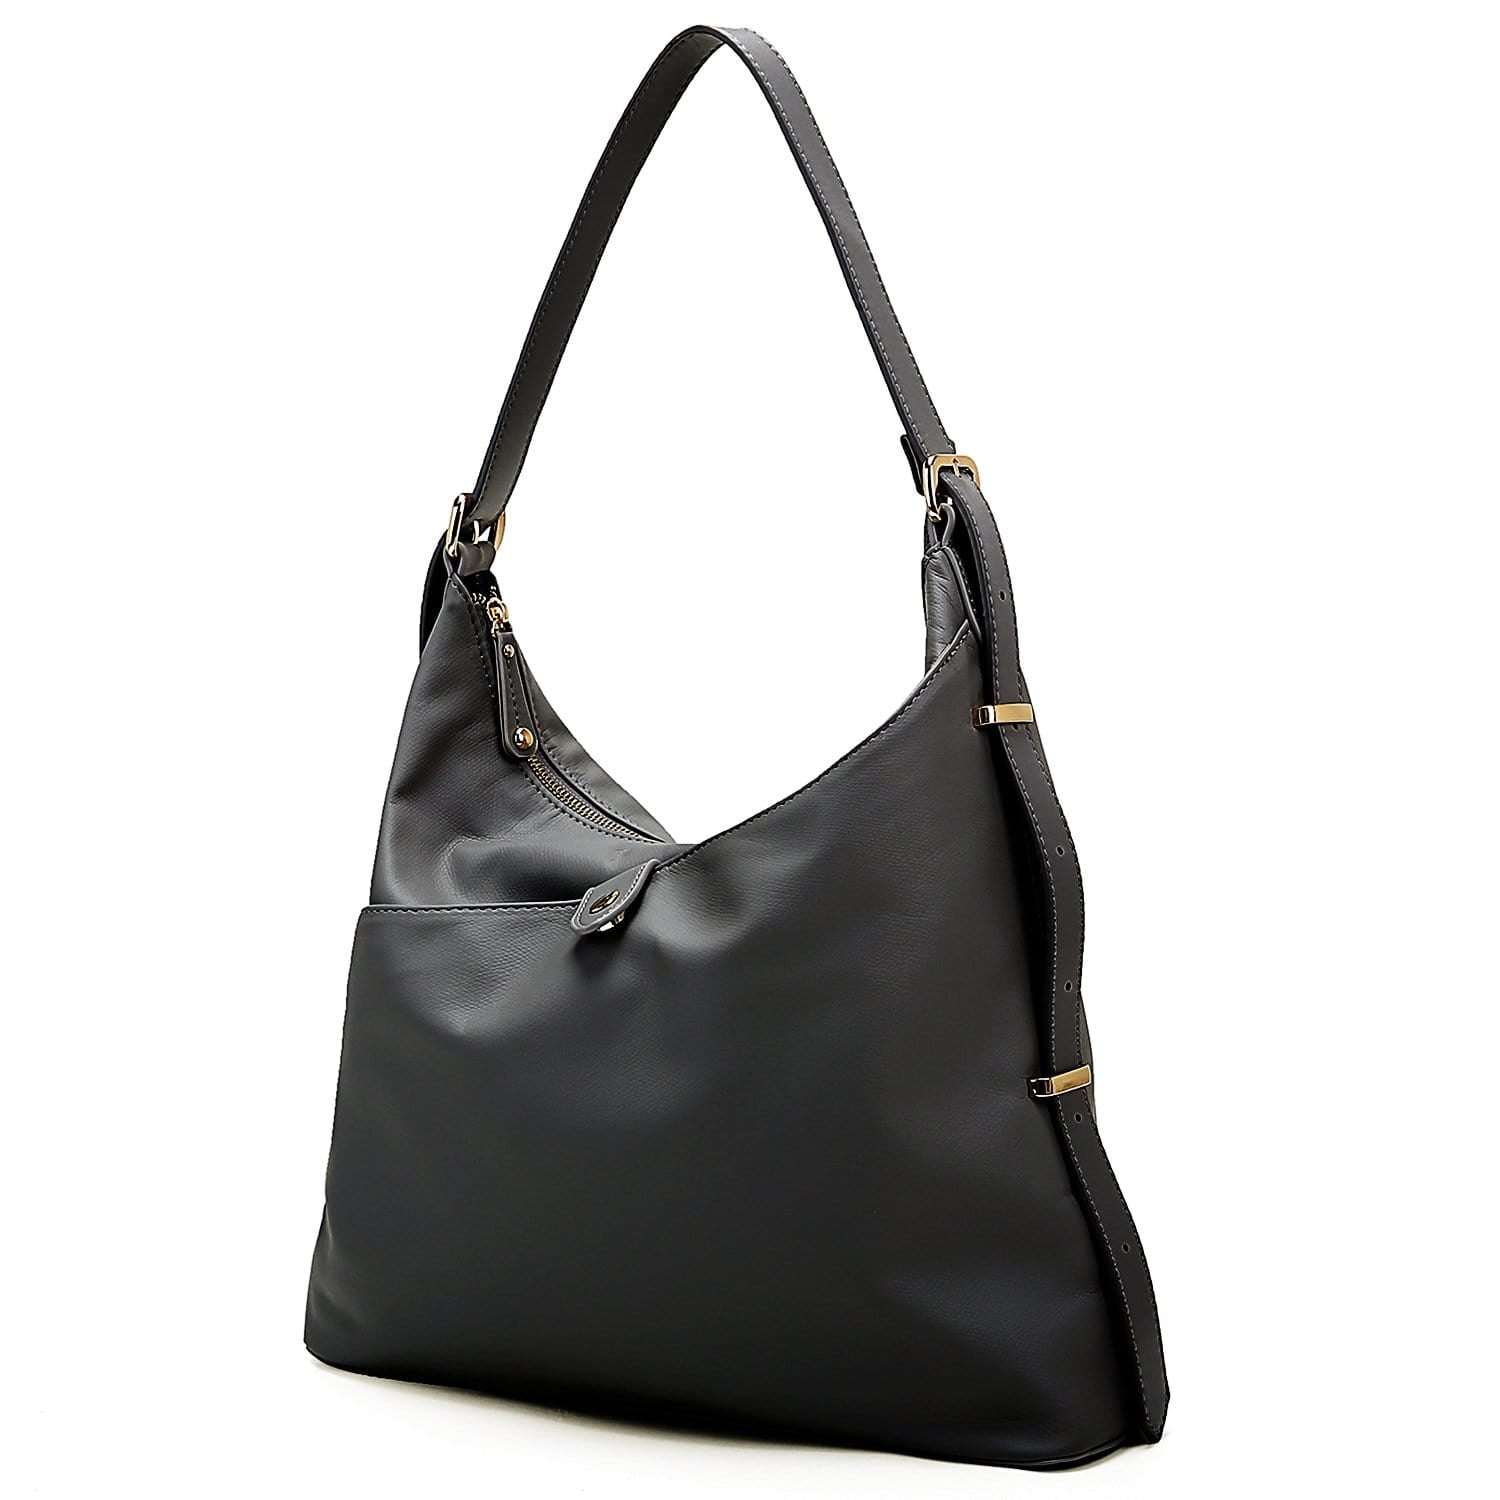 ff784a1fa9ae Women s Shoulder Bags Hobo Handbags PU Leather Top-Handle Purse Crossbody  Bag with Adjustable Shoulder